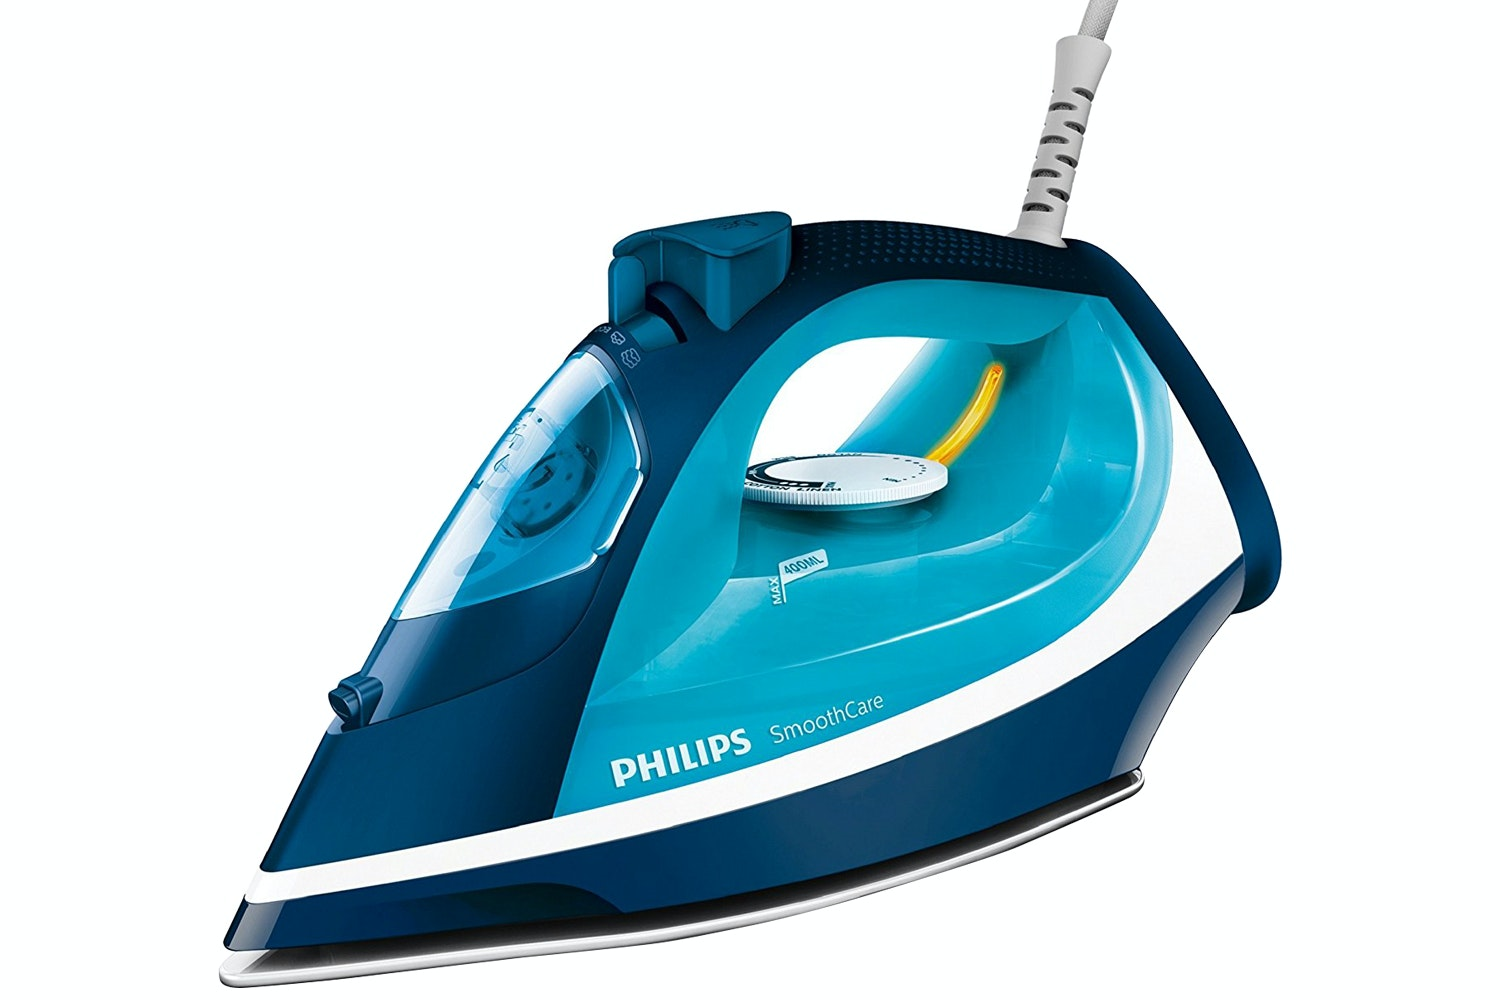 Philips SmoothCare 2400W Steam Iron | GC3583/20